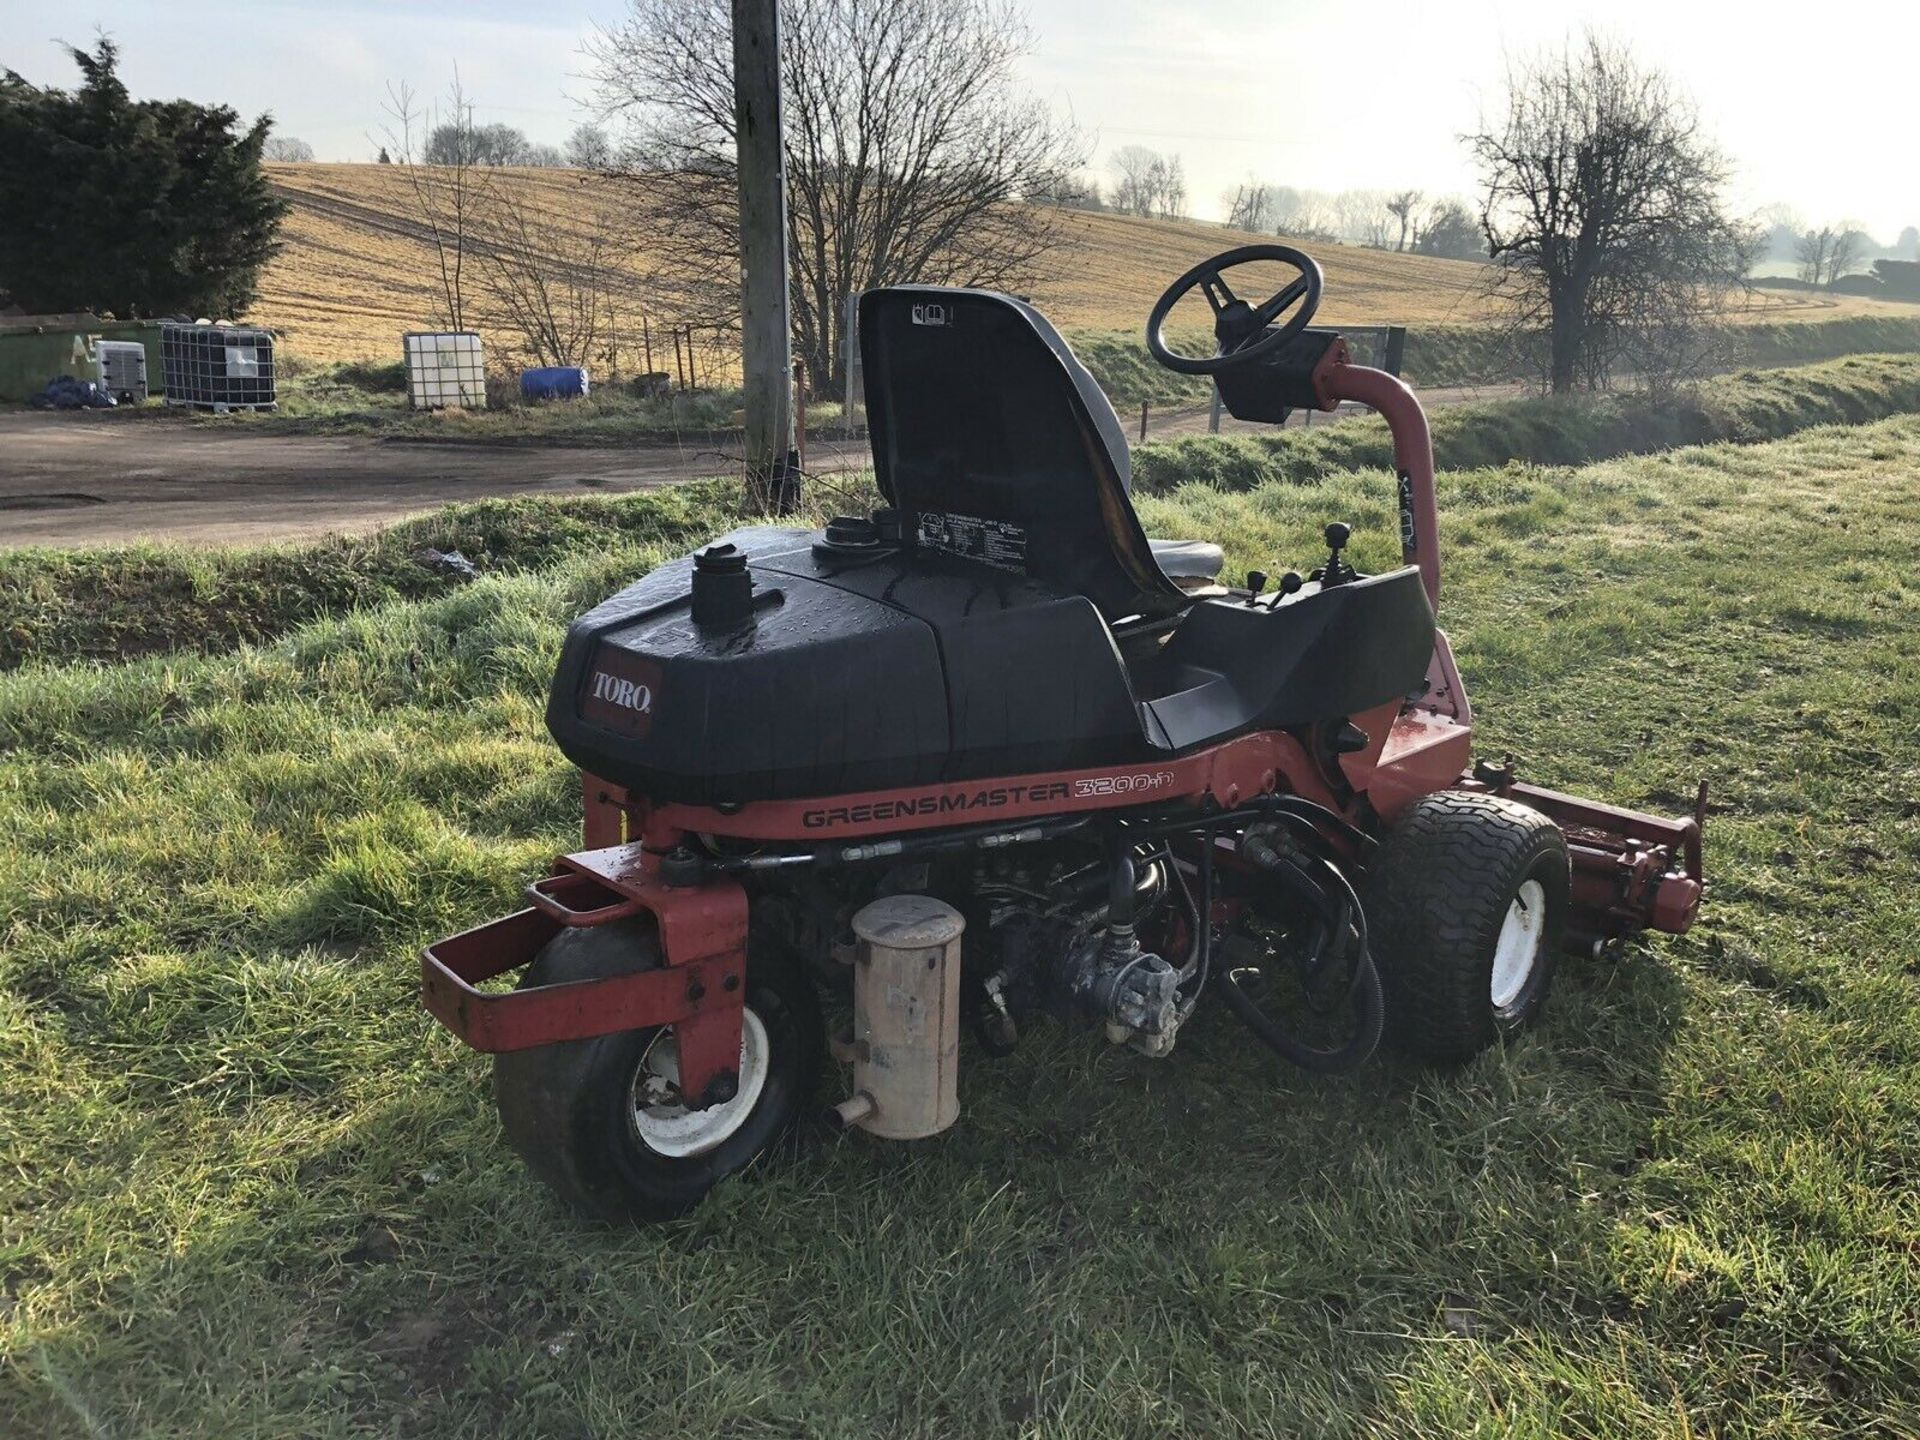 Lot 190 - TORO 3200 DIESEL RIDE ON LAWN MOWER, HYDROSTATIC DRIVE, VERY SHARP TURNING CIRCLE, COLLECTION BOXES